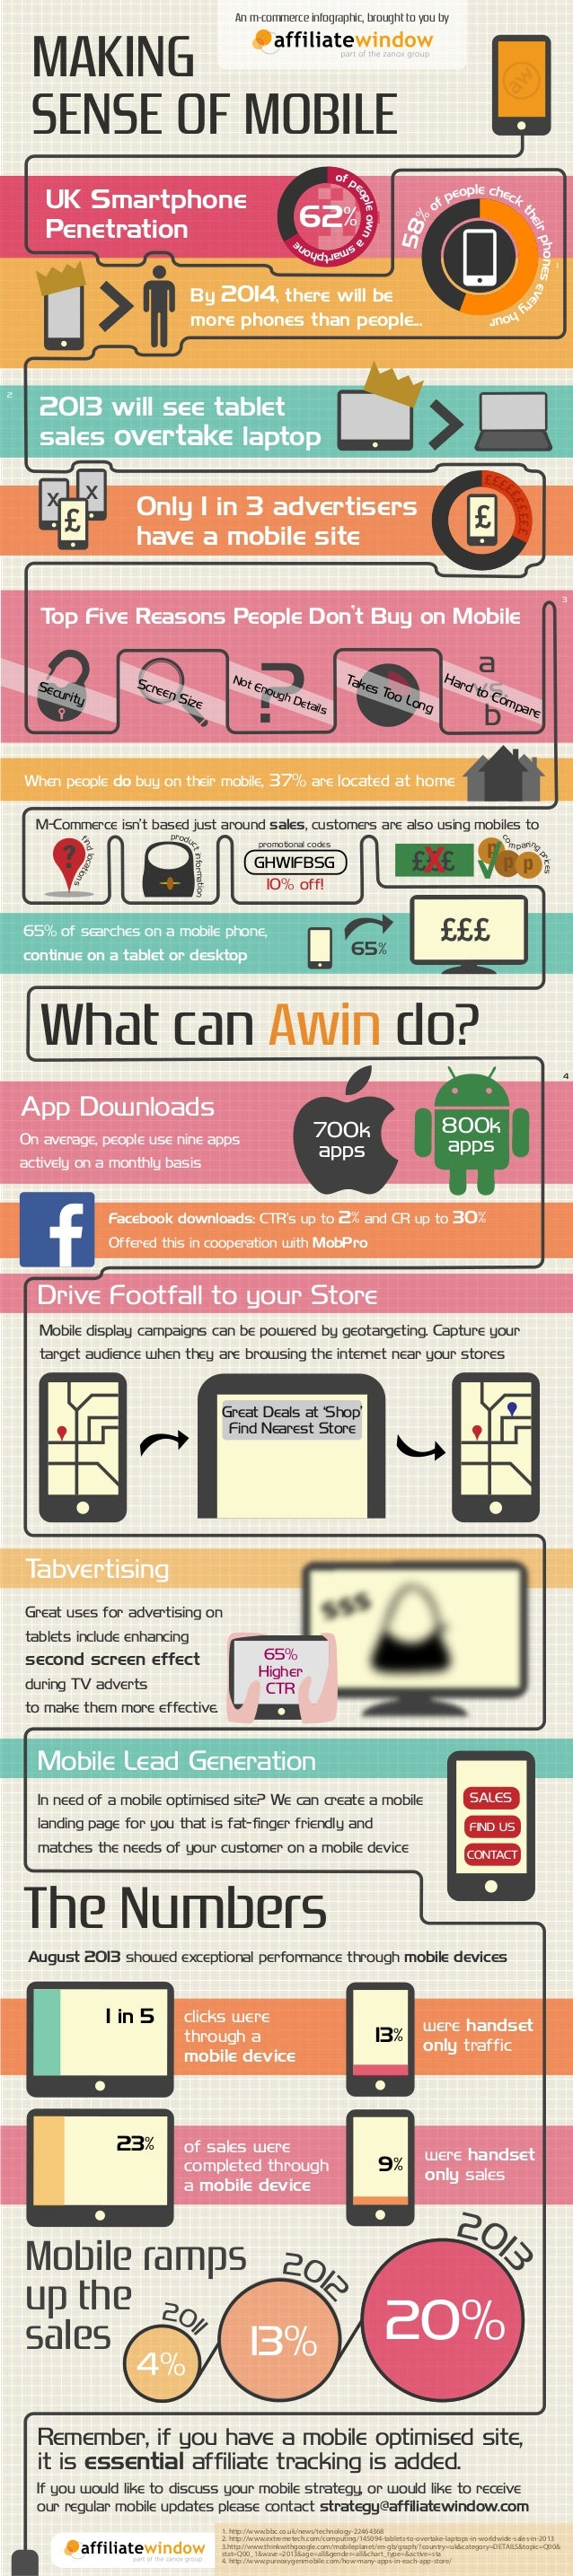 An m-commerce infographic, brought to you by  MAKING SENSE OF MOBILE of p e  58 %  artphon sm  By 2014, there will be more...